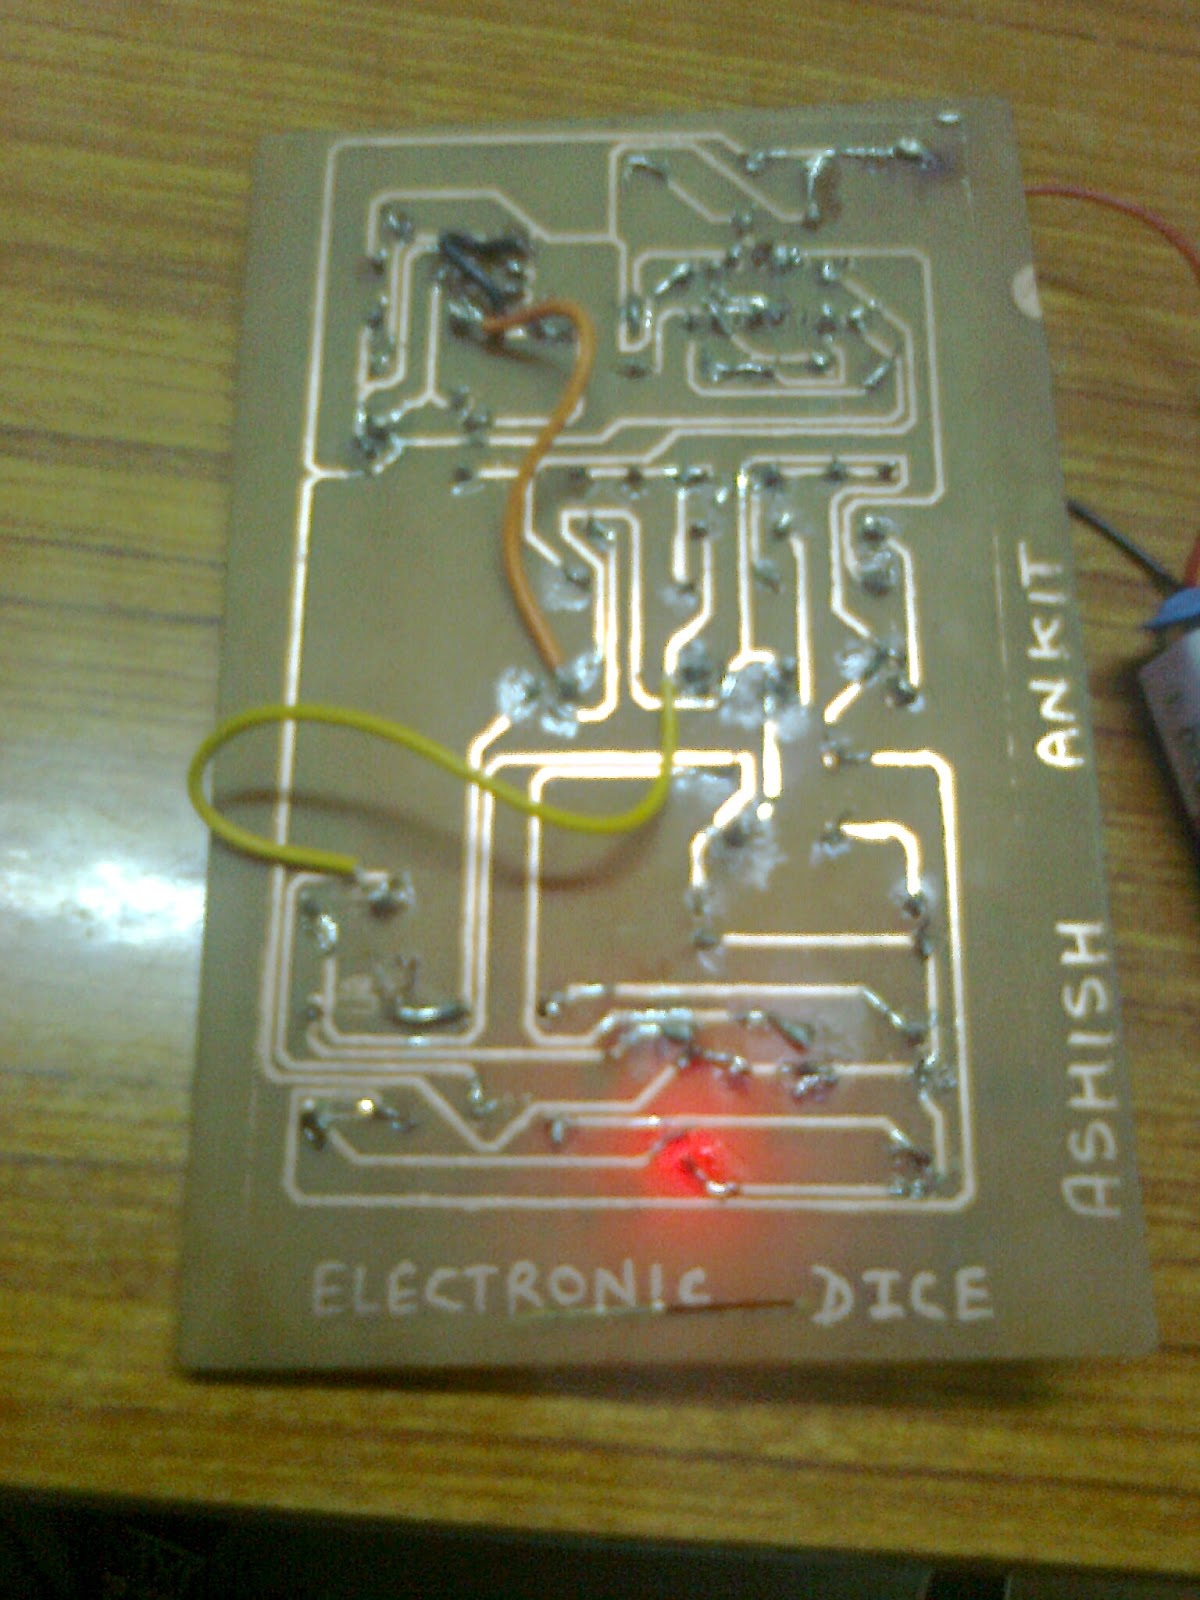 Projects For You Electronic Dice Circuit Using Ic Cd4017 Just Enjoy Your Project